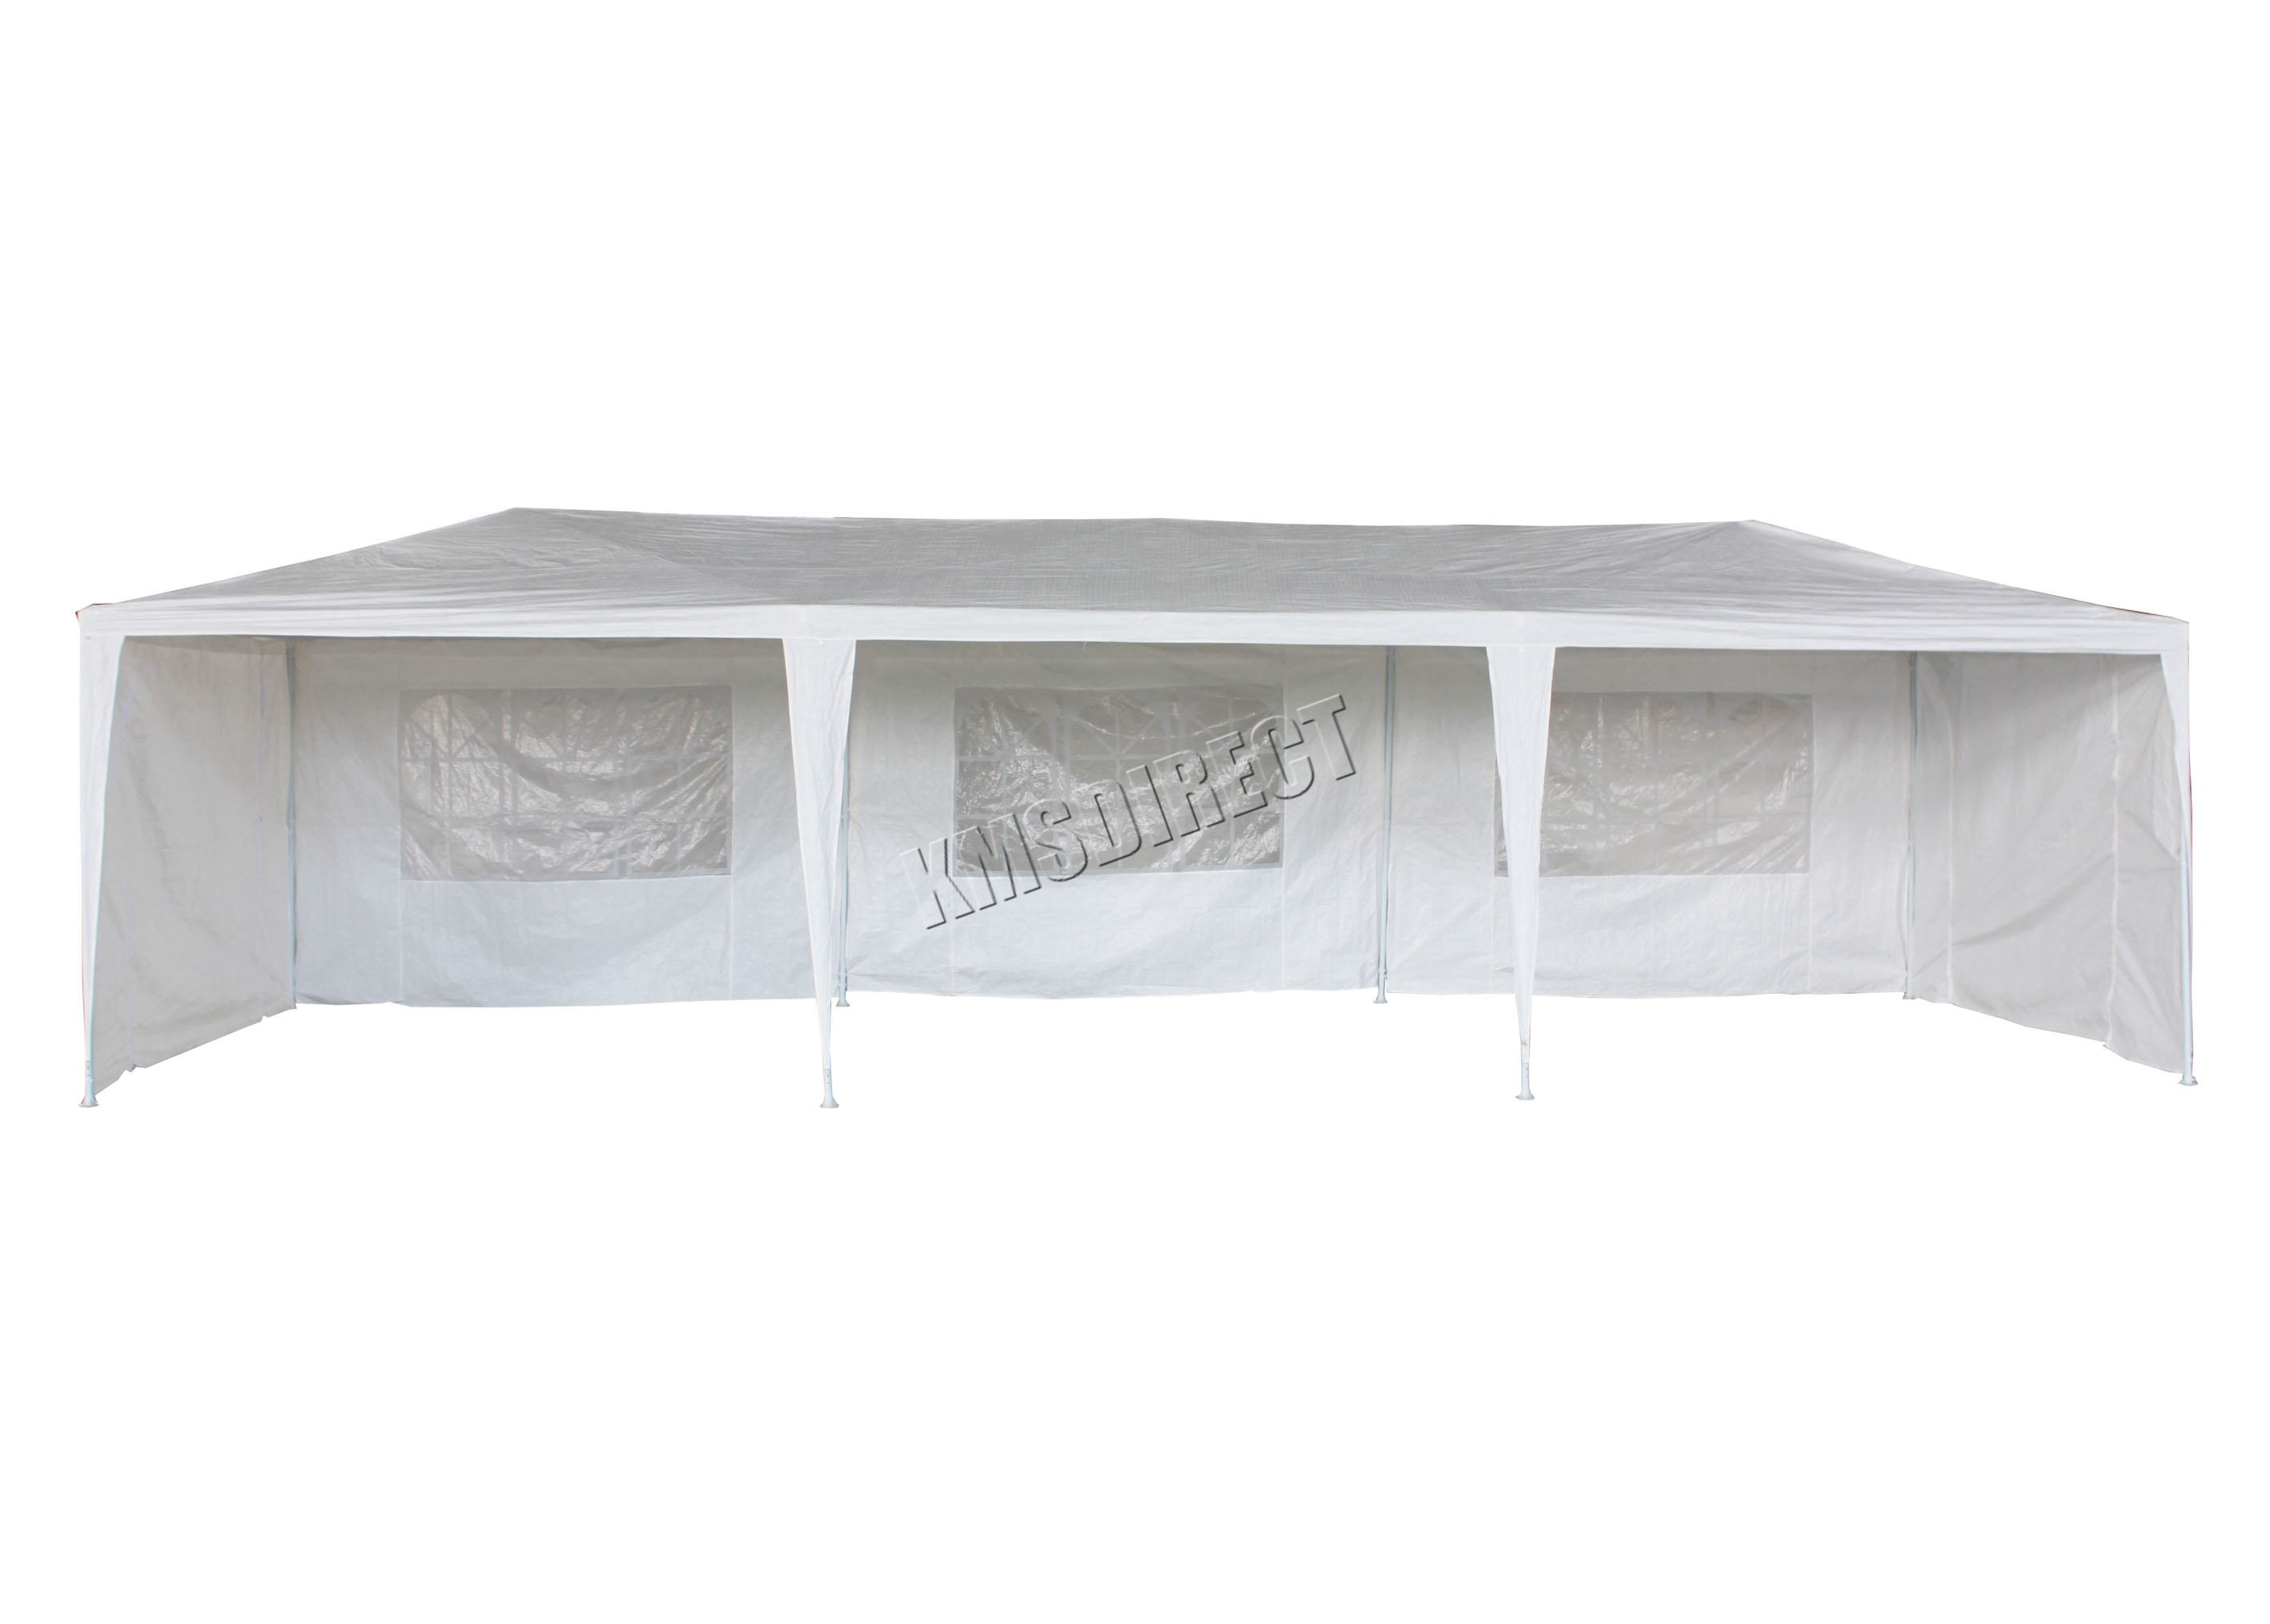 3m x 9m White Waterproof Outdoor Garden Gazebo Party Tent